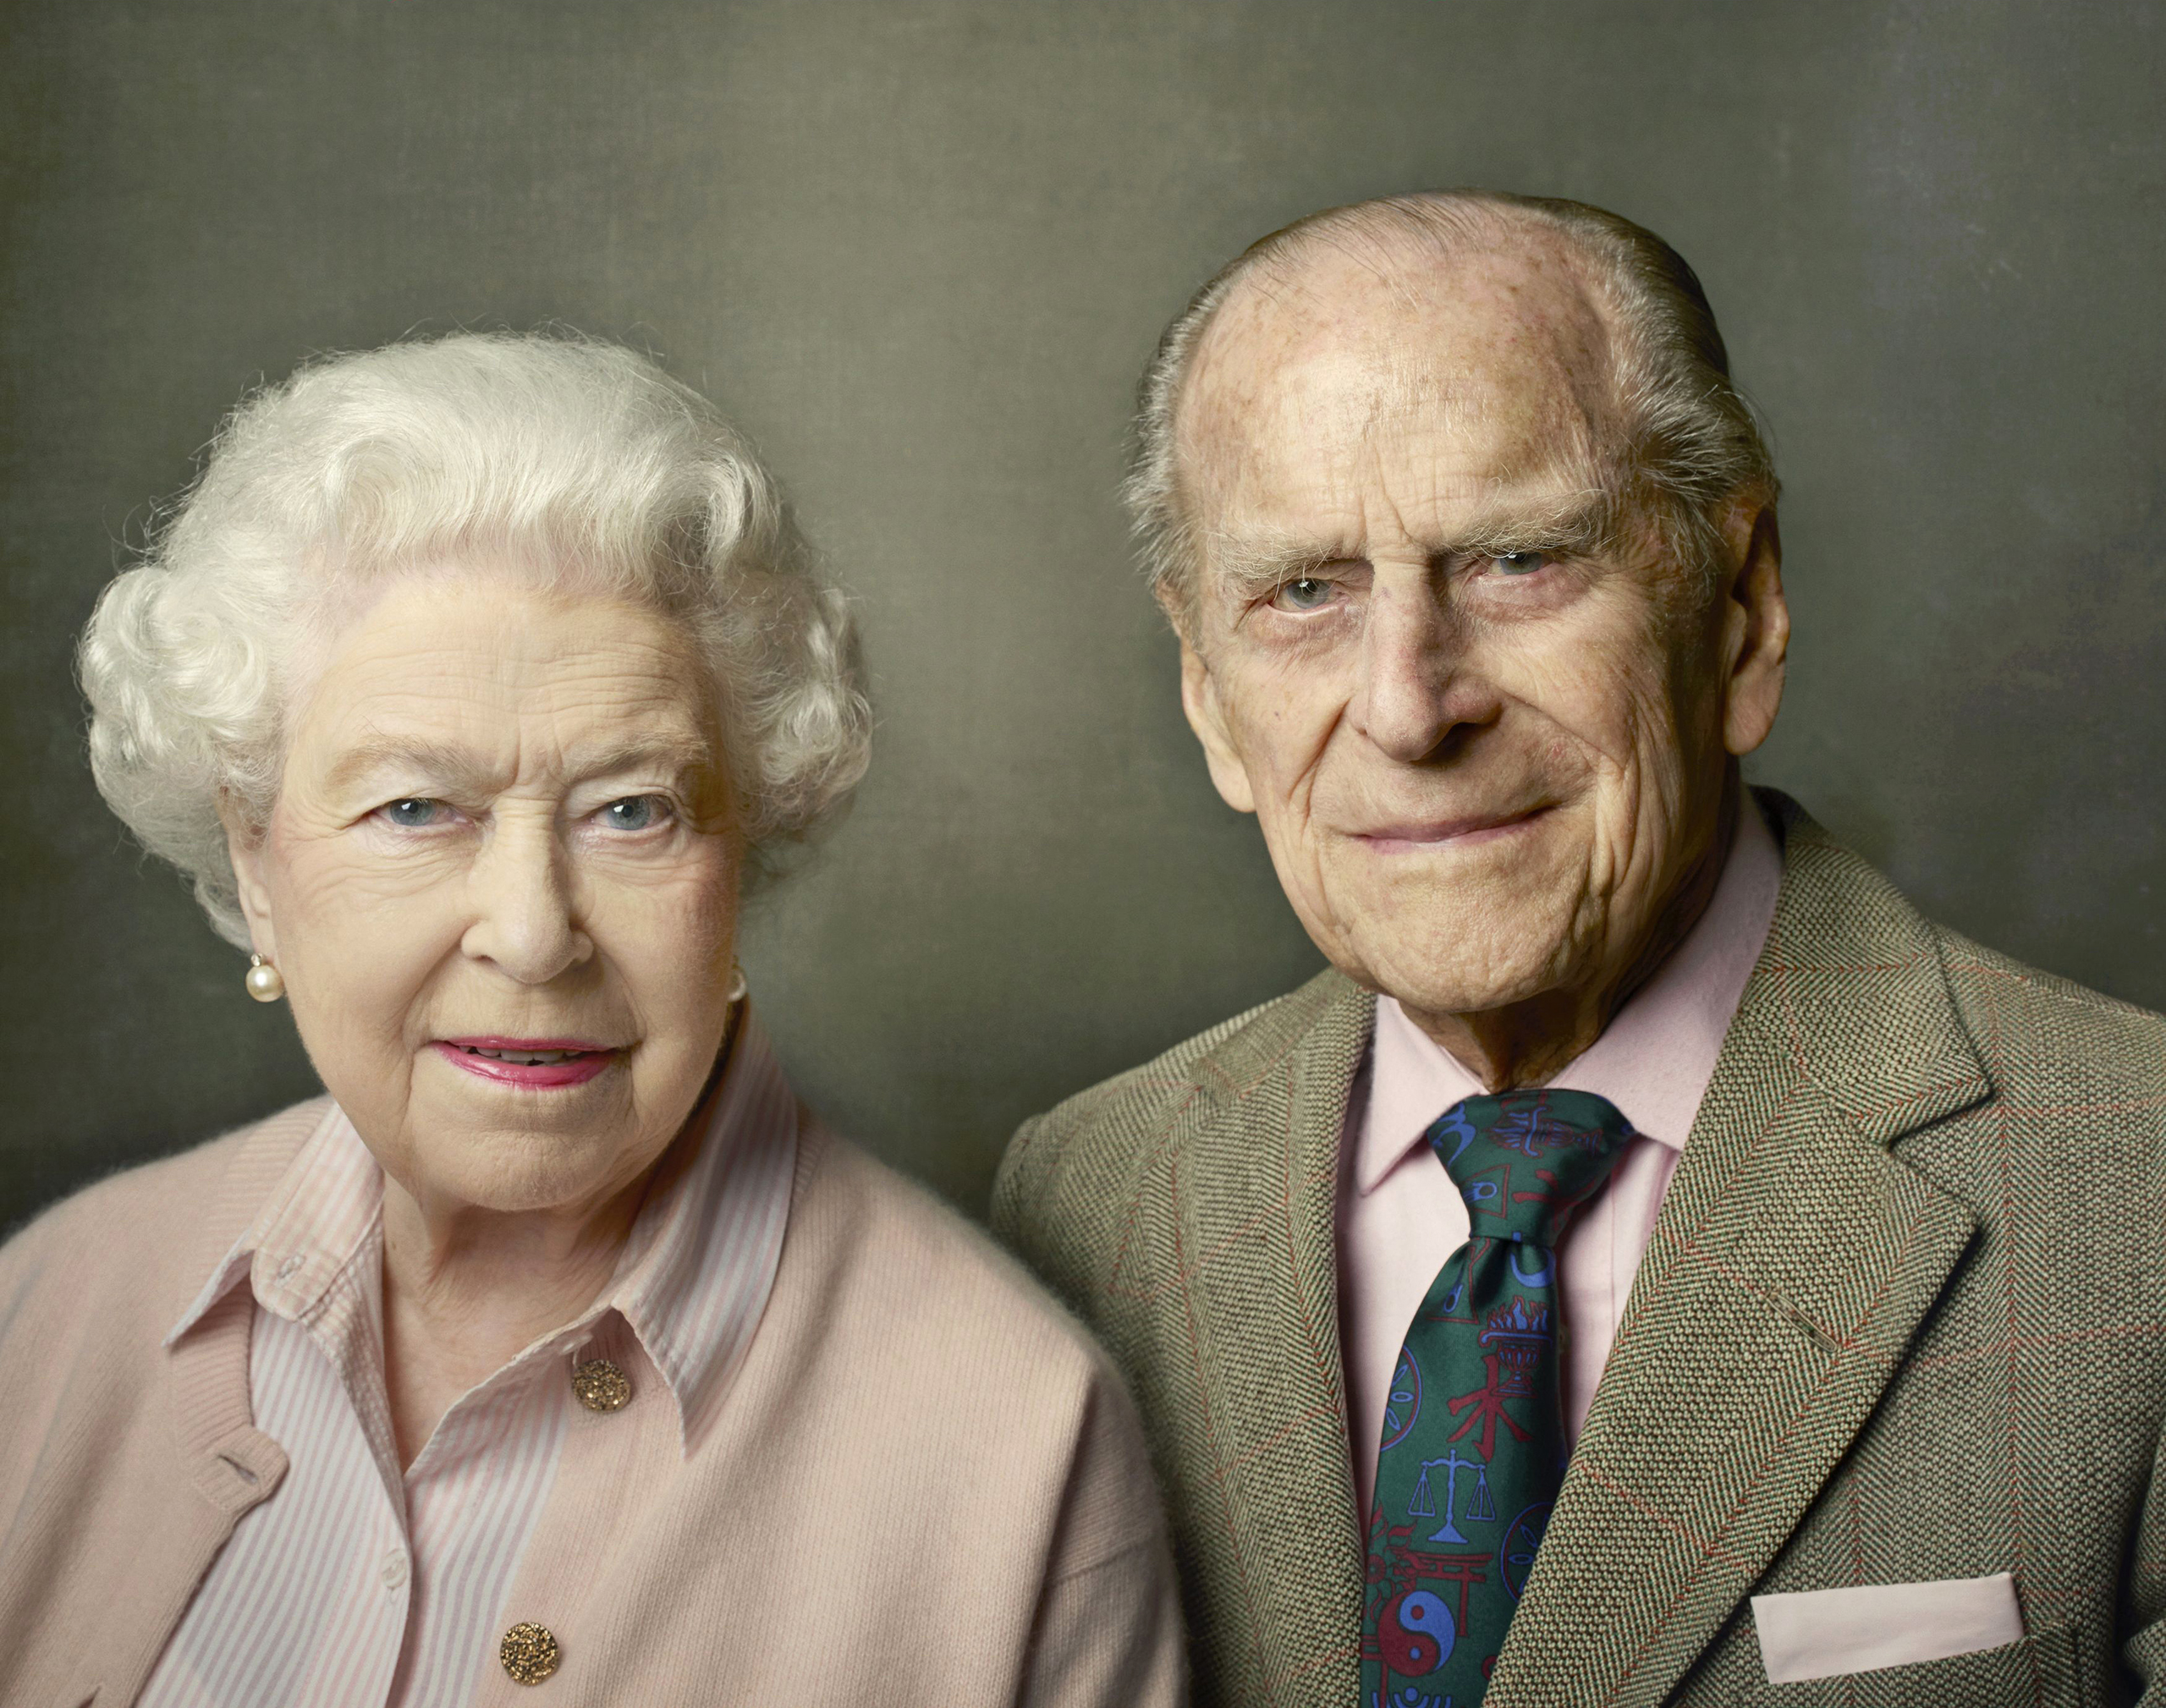 In this undated photo released by Buckingham Palace on June 10, 2016, Britain's Queen Elizabeth II and Prince Philip, the Duke of Edinburgh, pose for a photograph to mark the Queen's 90th birthday in Windsor. The queen, Britain's oldest and longest-reigning monarch, turned 90 on April 21. She usually celebrates her birthday privately, but this year's milestone served as the jumping off point for weeks of celebrations.